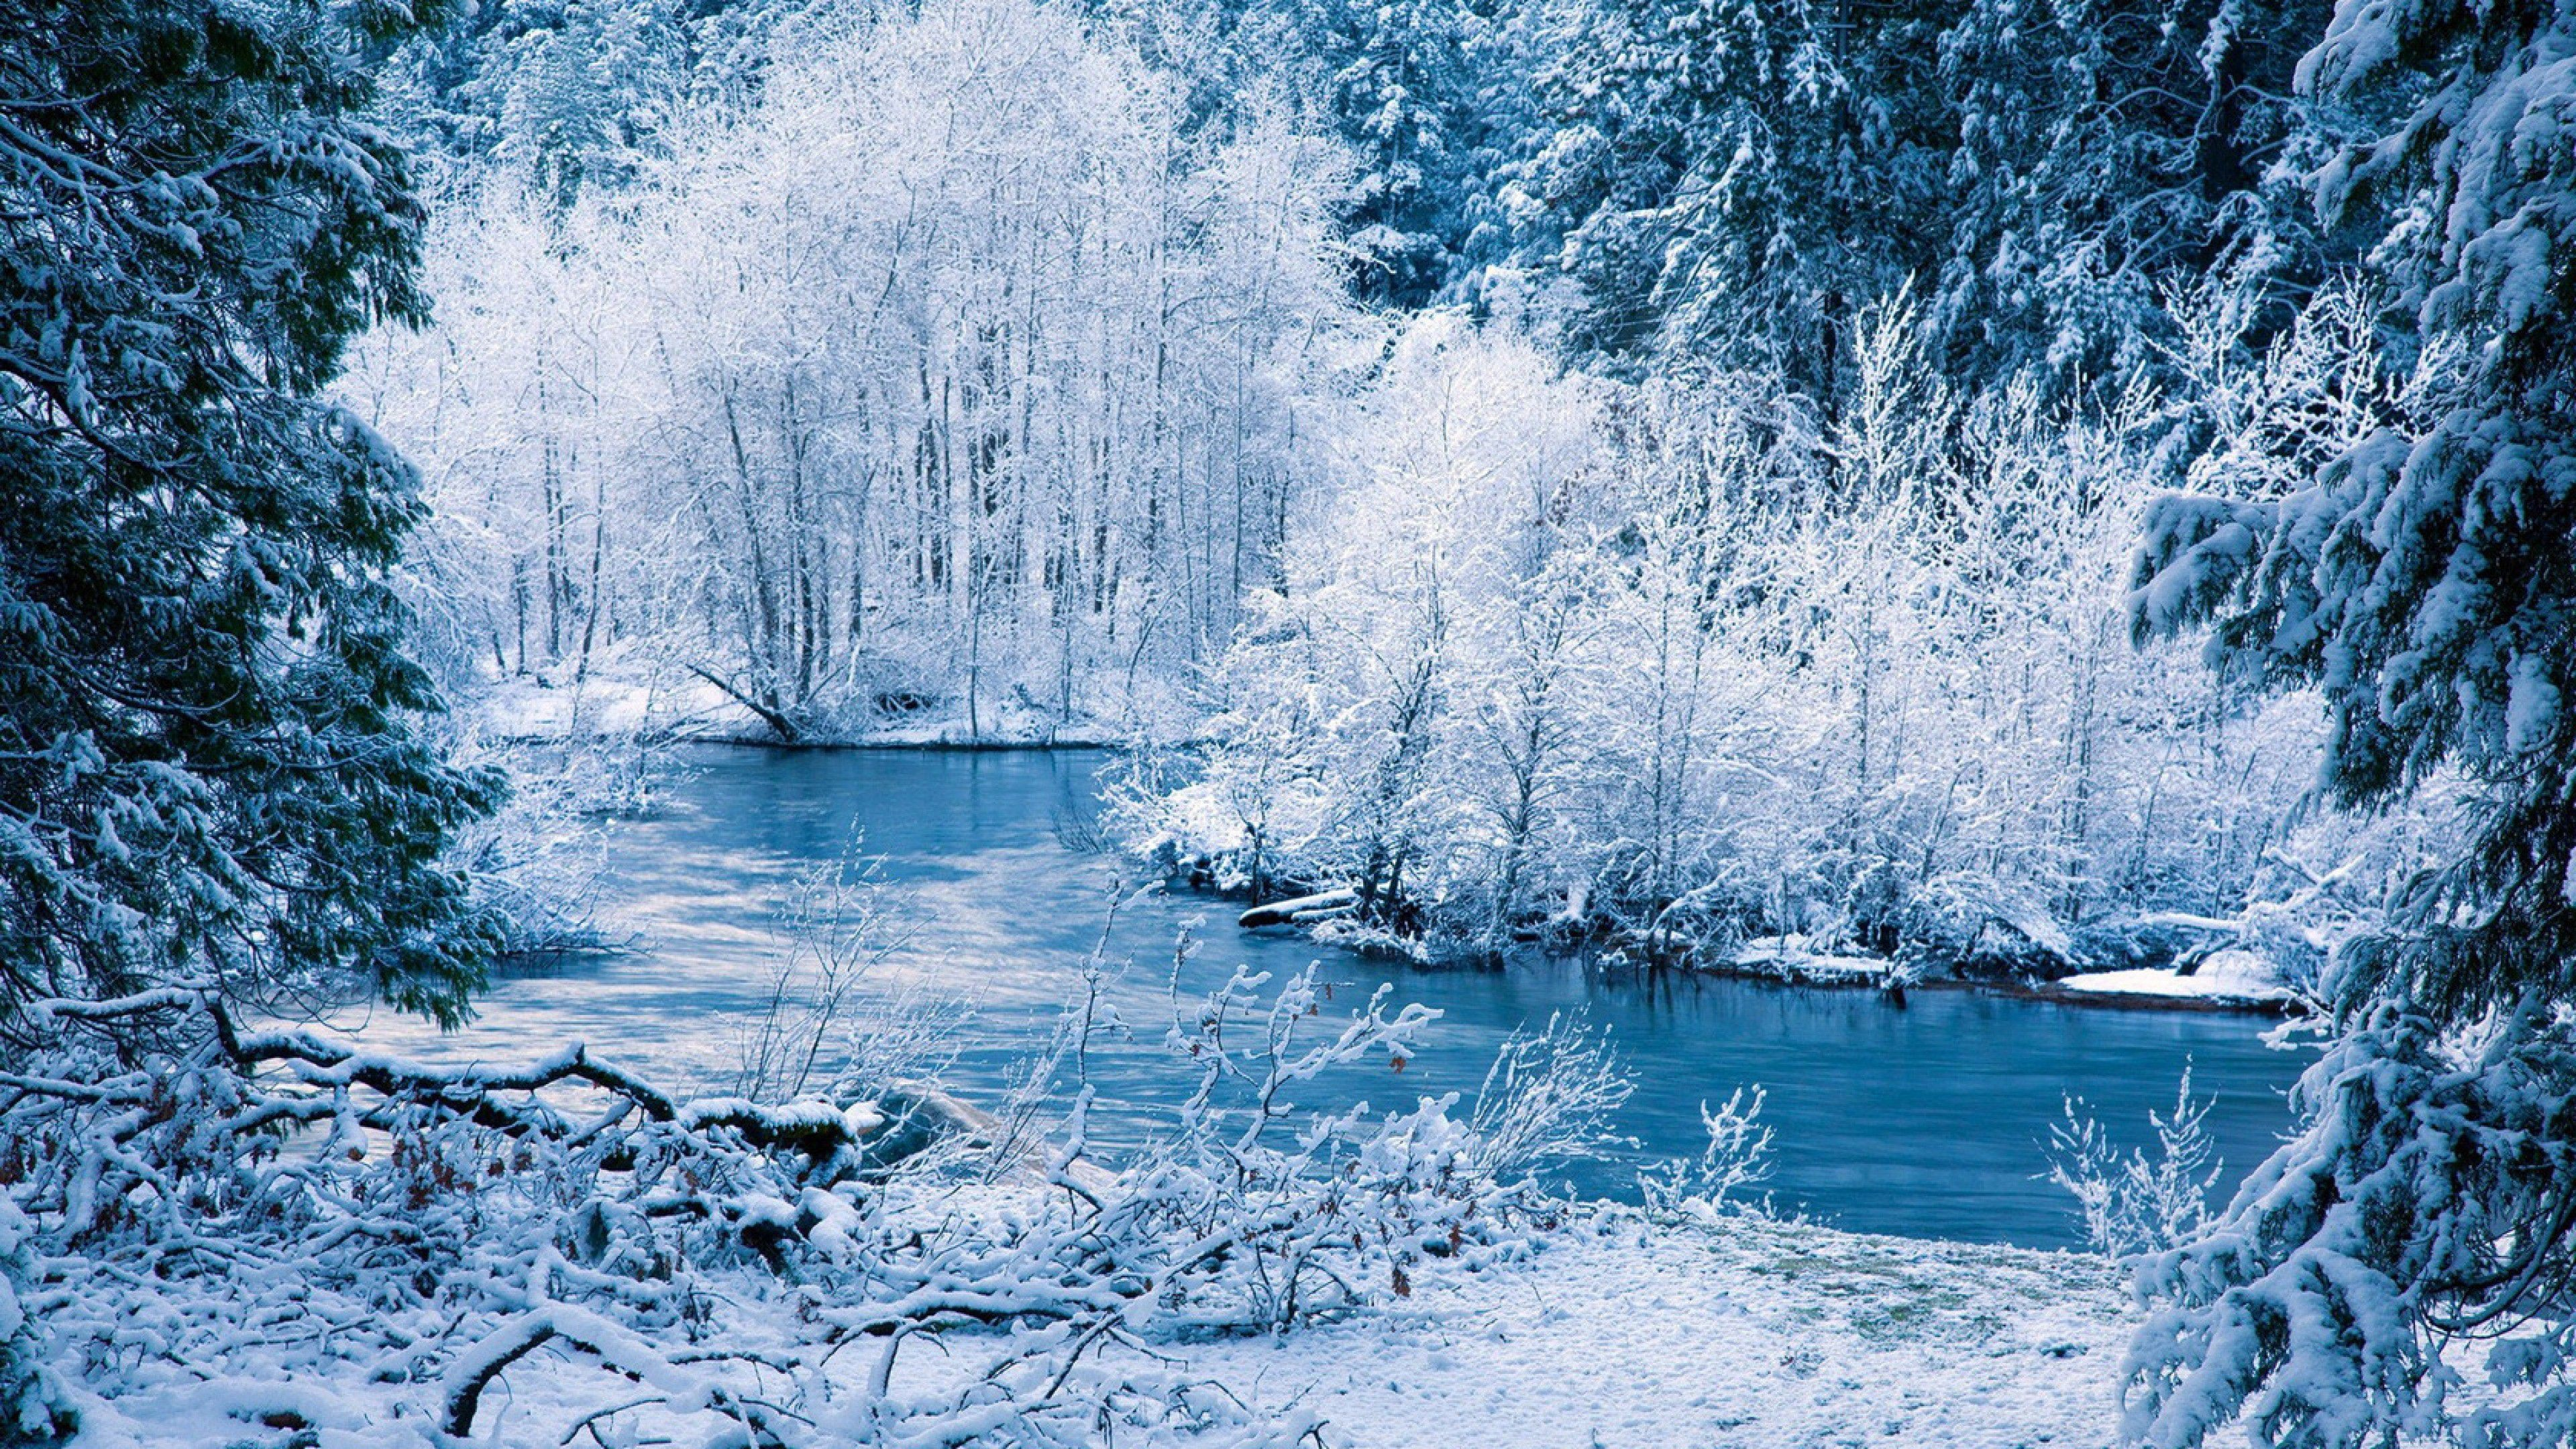 Bluish winter landscape wallpaper